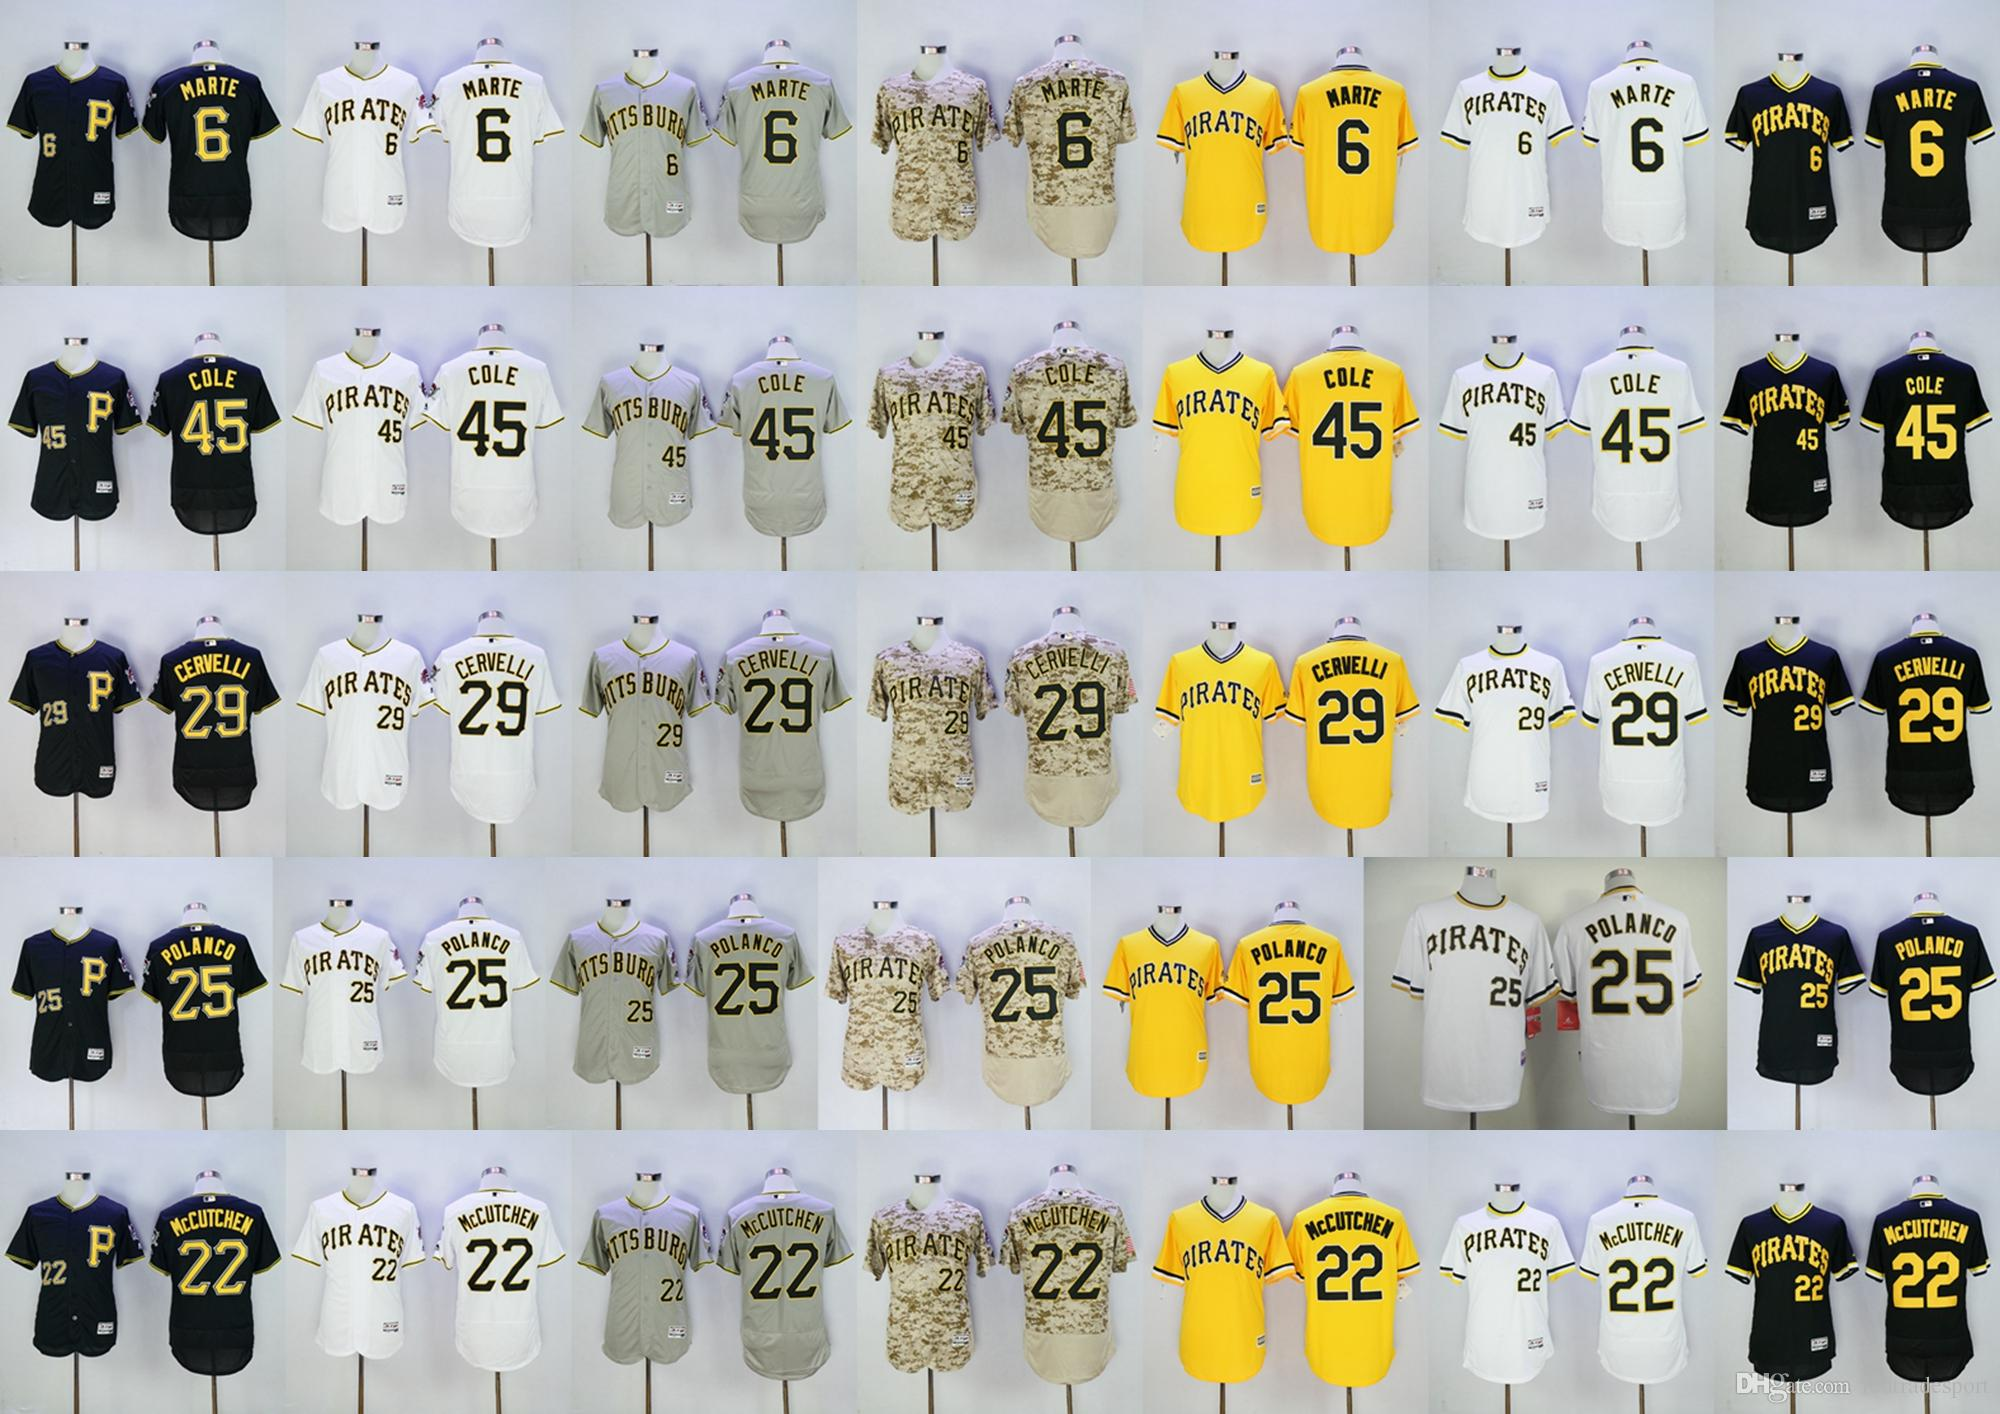 2017 Pittsburgh Pirates Maillot de base-ball 22 Andrew McCutchen 6 Starling Mart